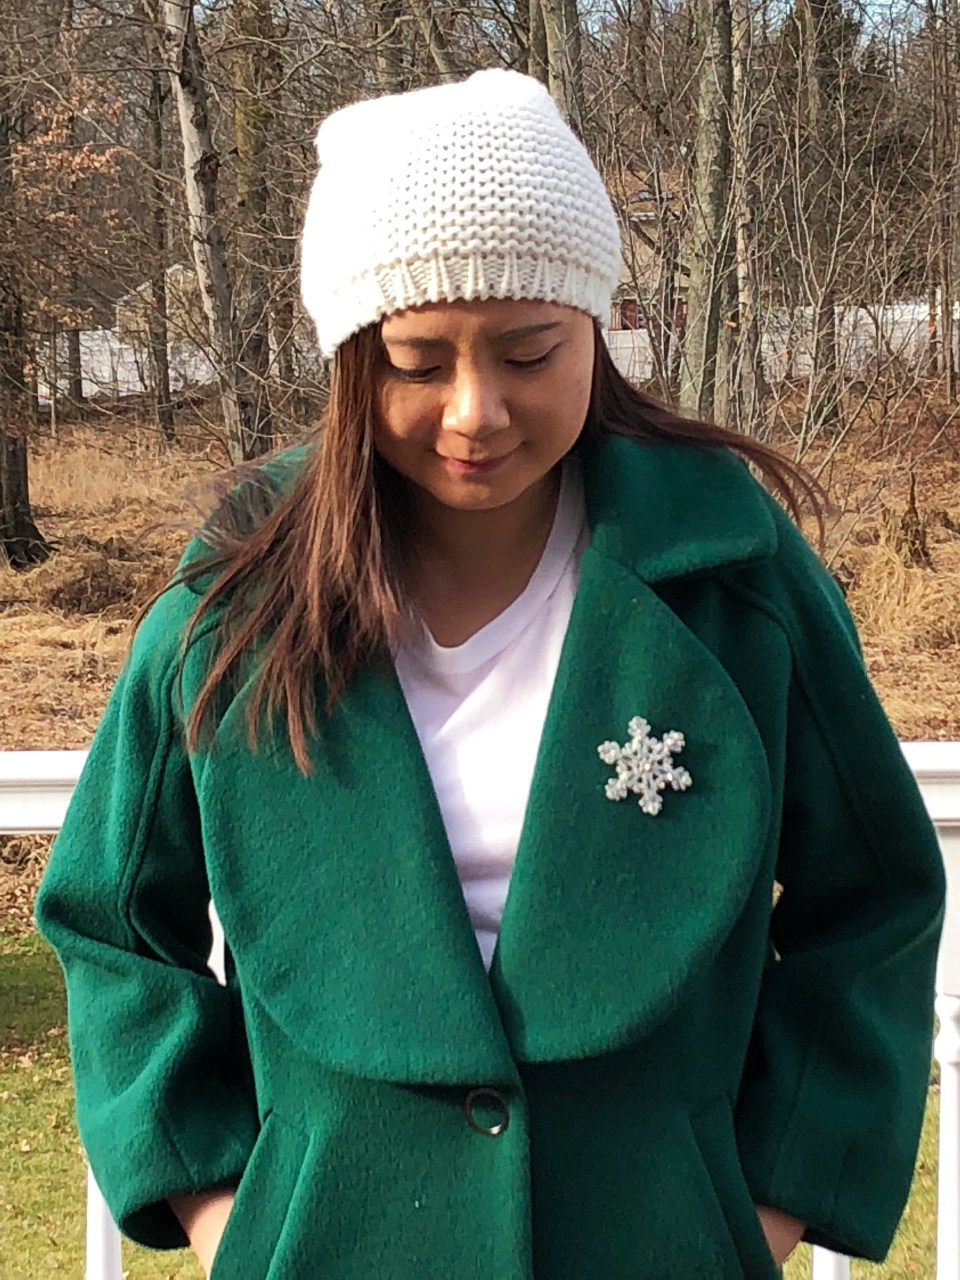 Green Lapel Coat + Snowflake Brooch 3